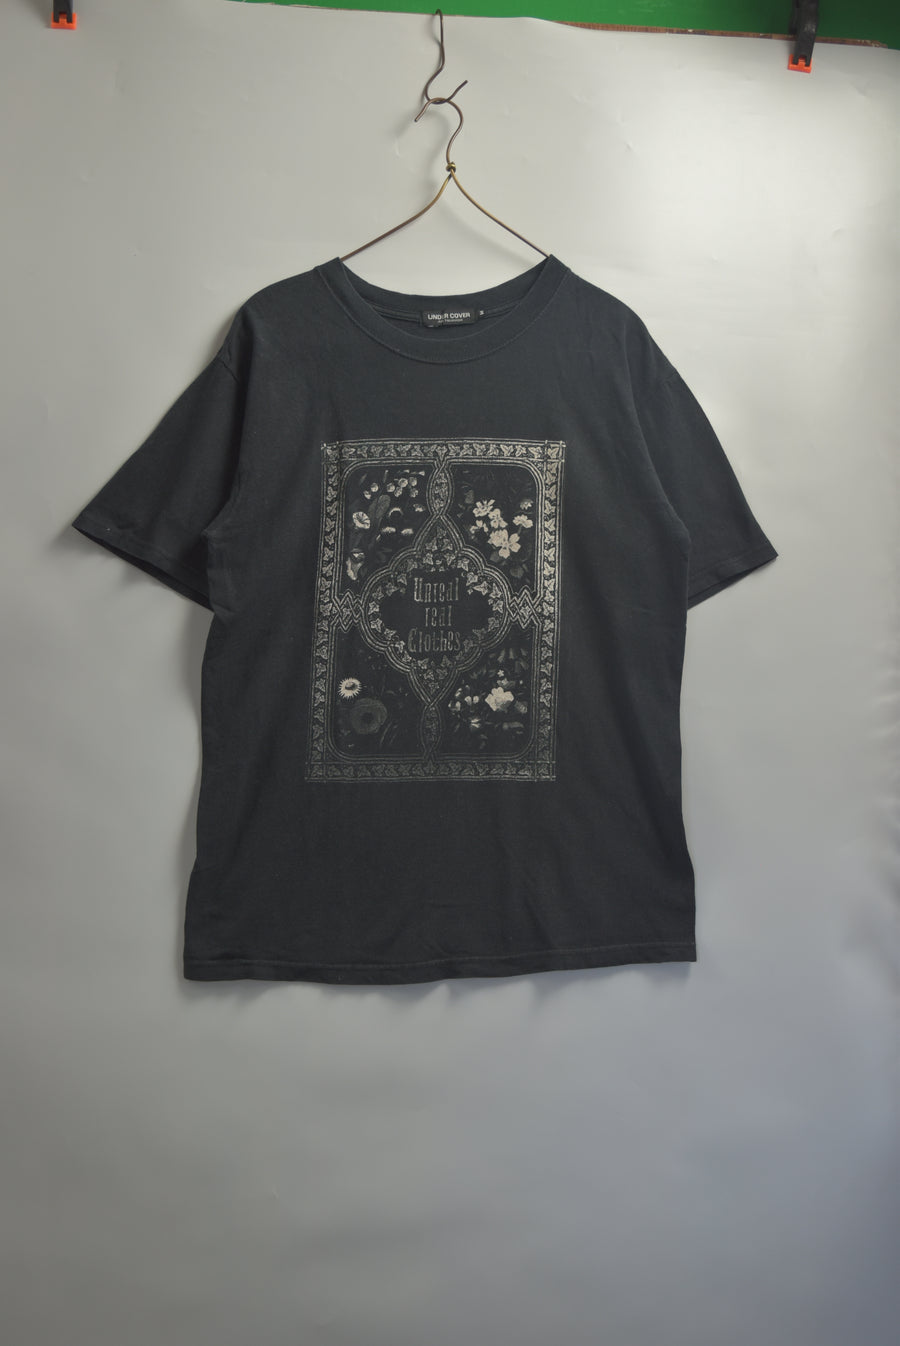 UNDERCOVER / Documentary Limited Playing cards Shirt / 8146 - 0701 53